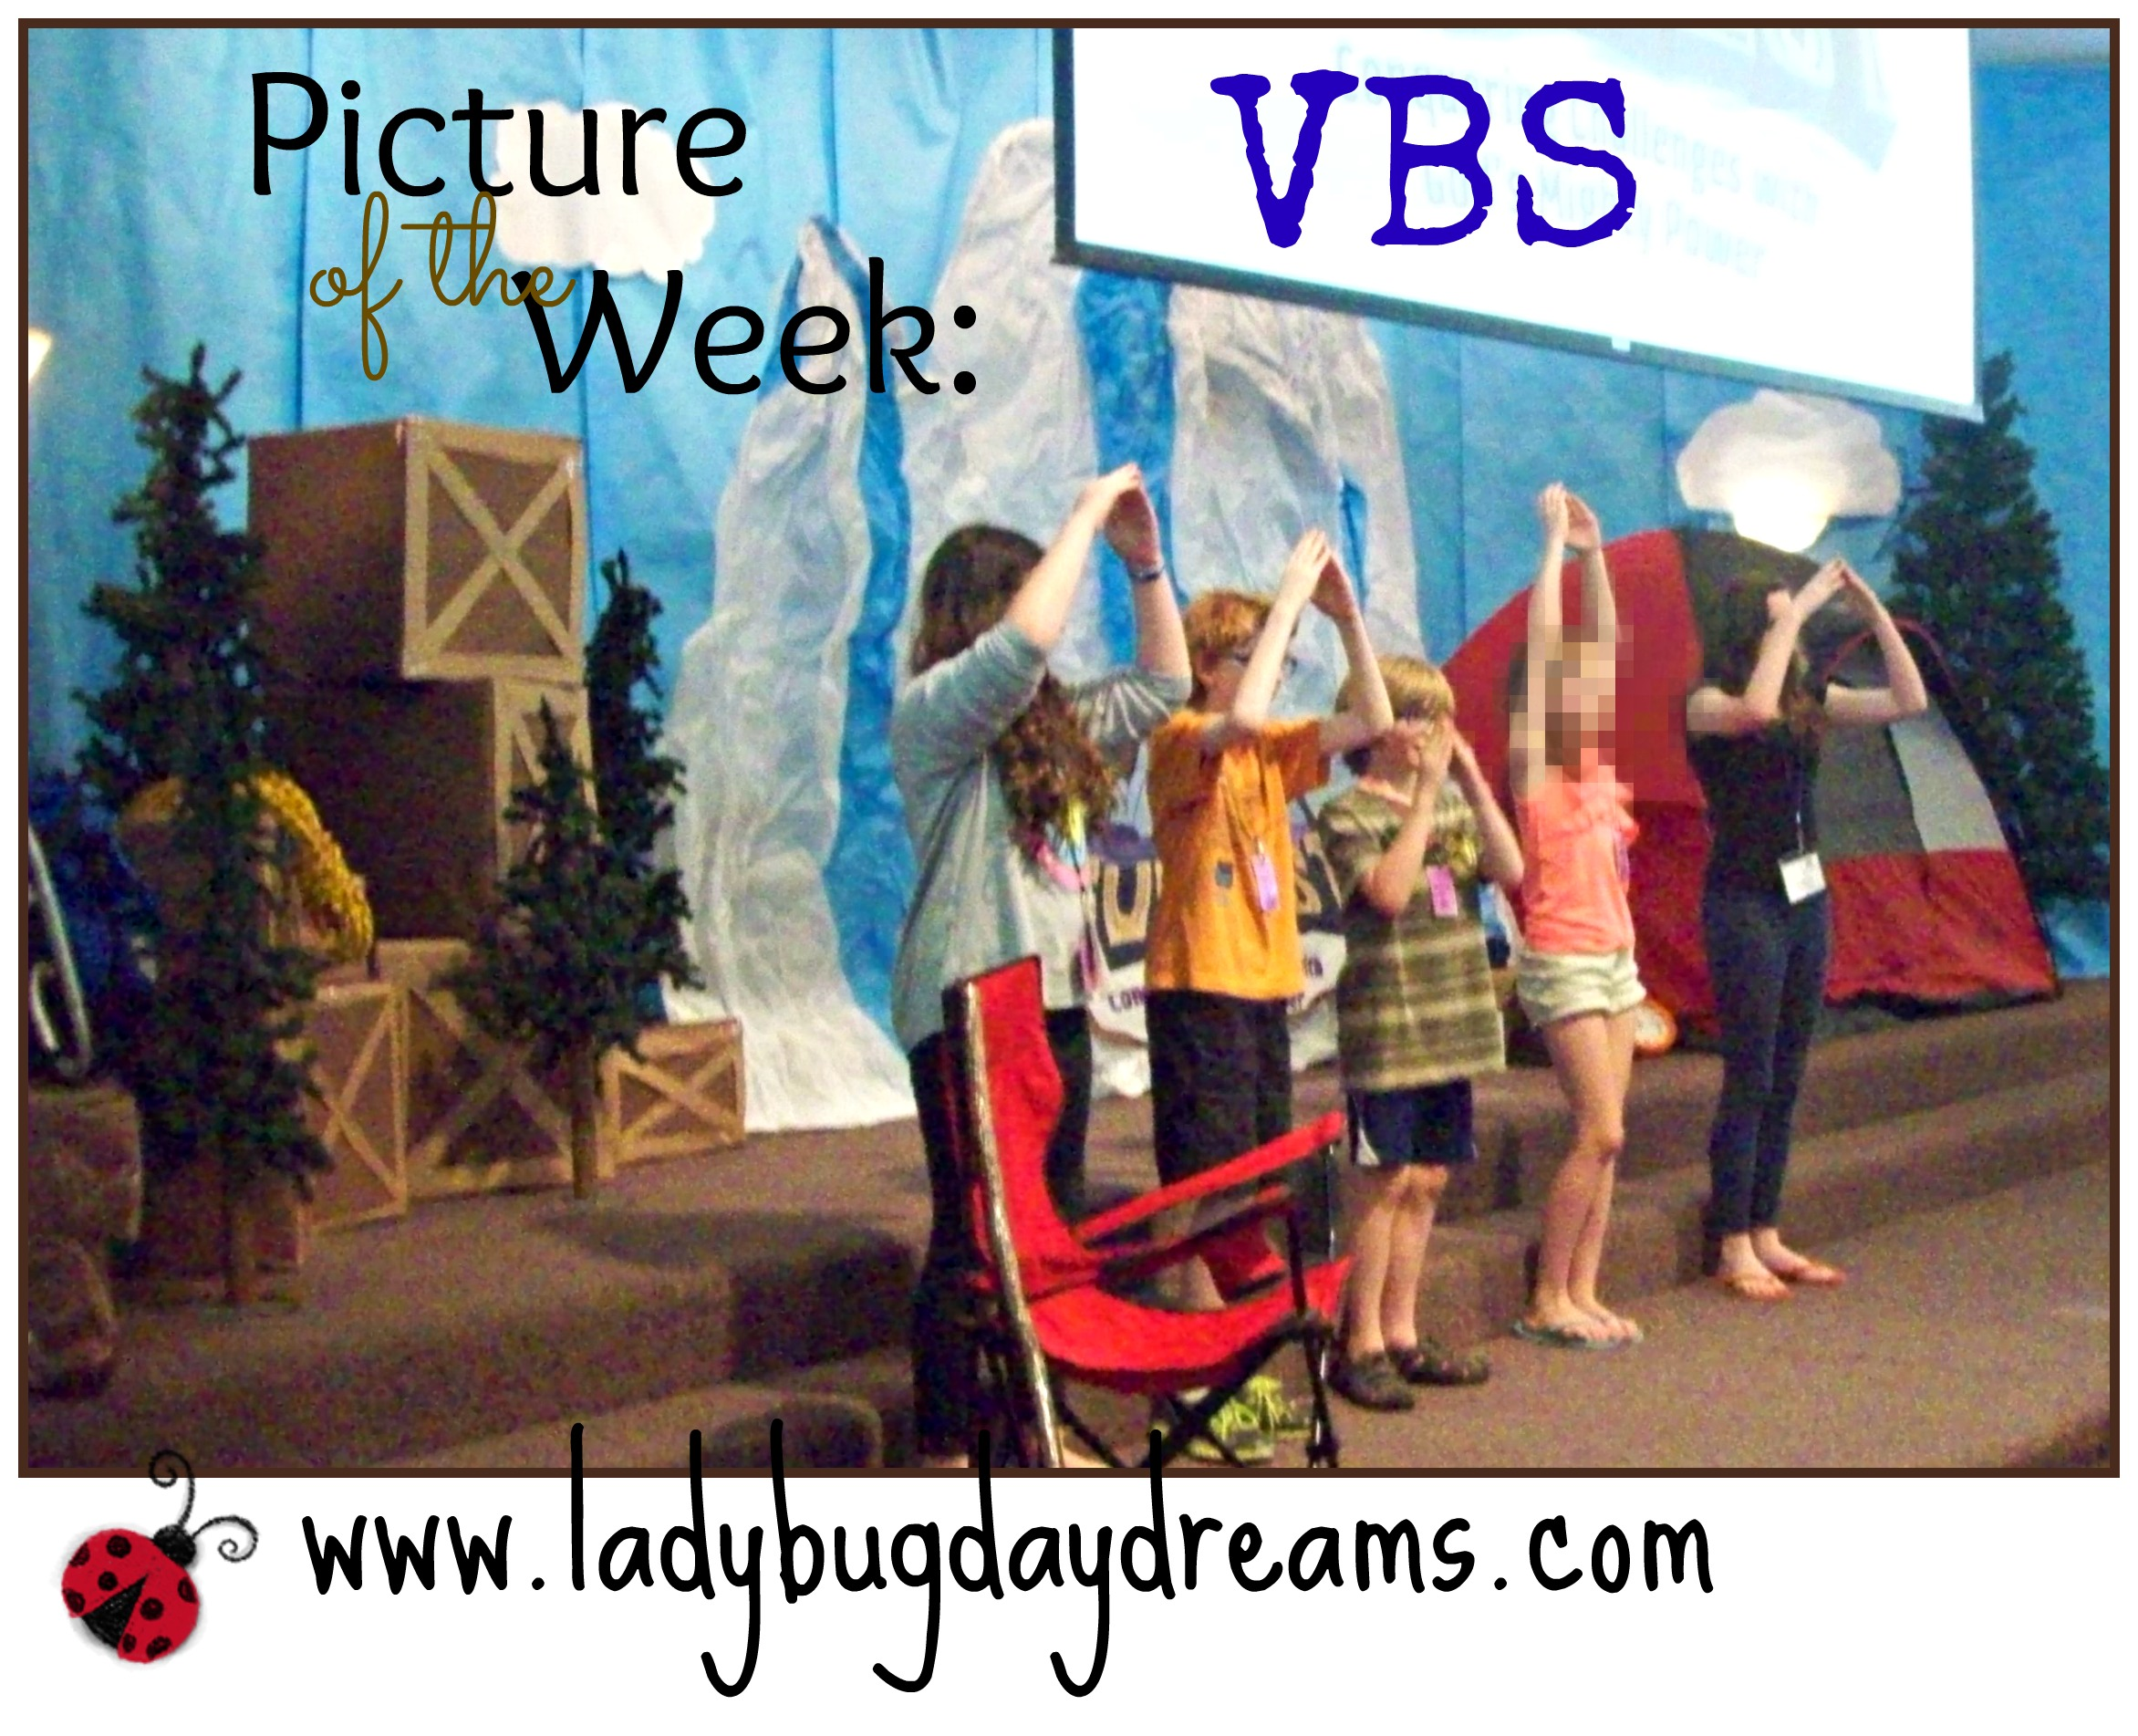 PITW VBS